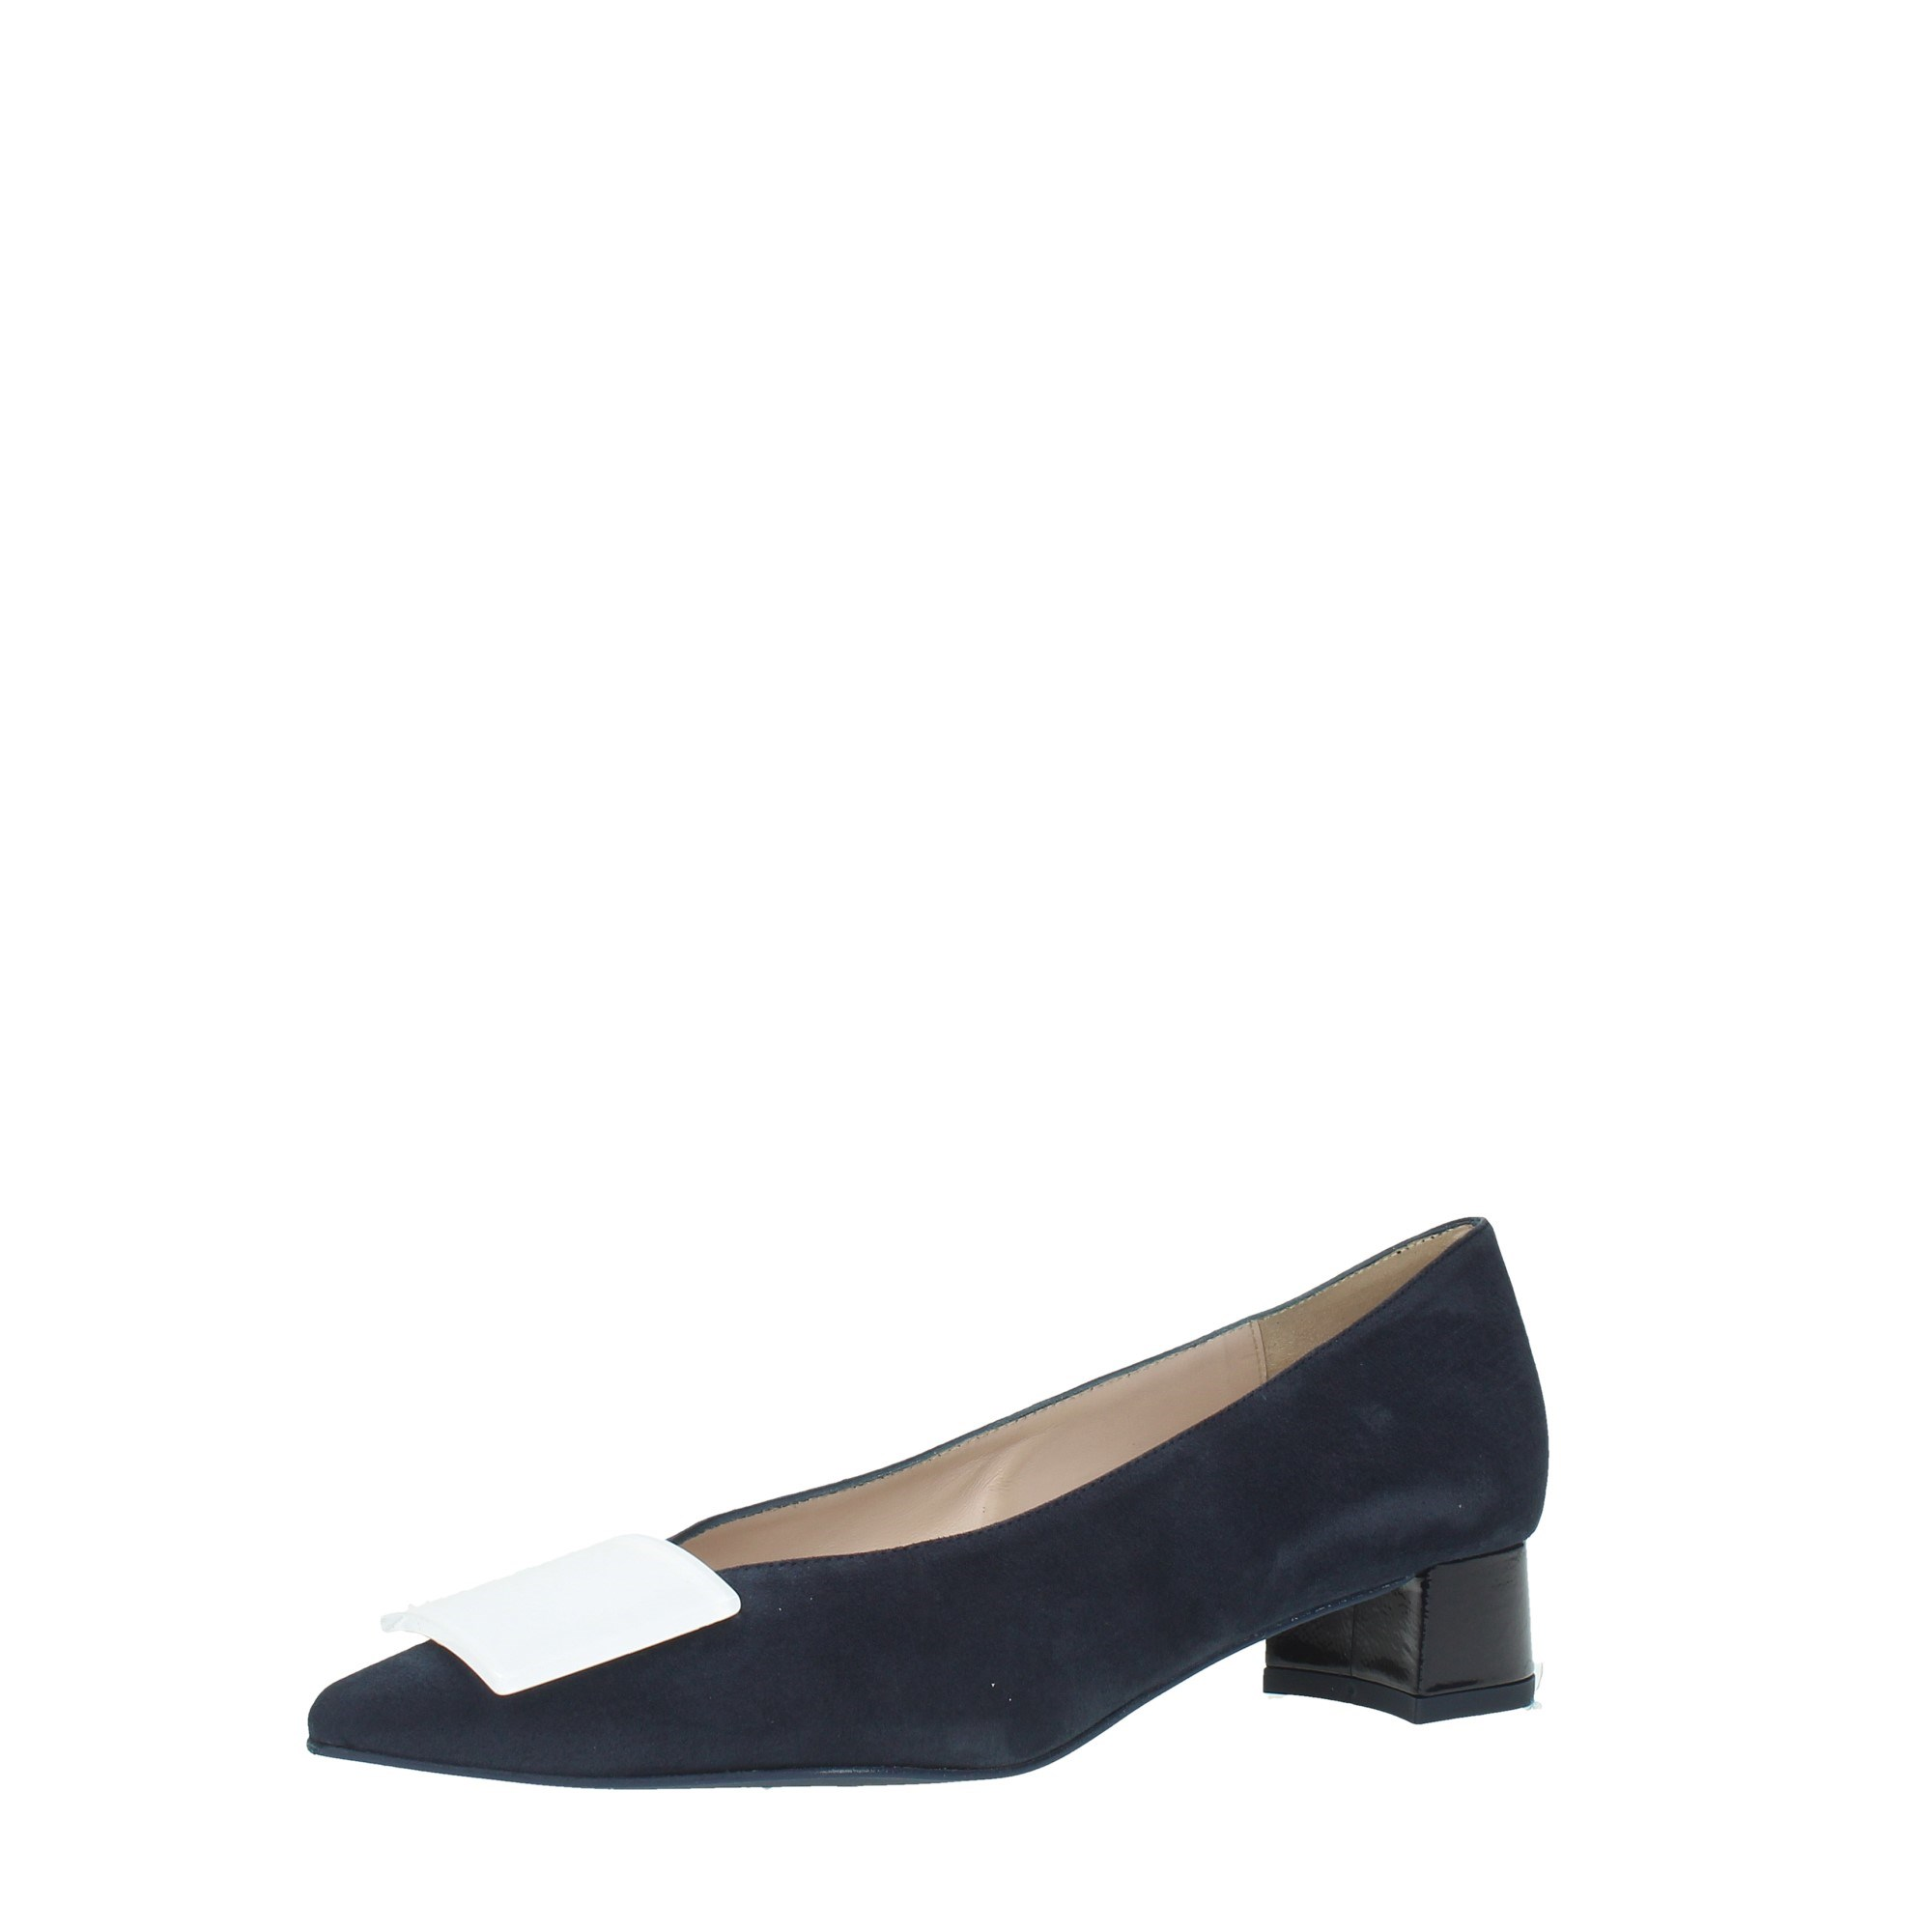 Ancarani Shoes Women Cleavage And Heeled Shoes Blue AN9653